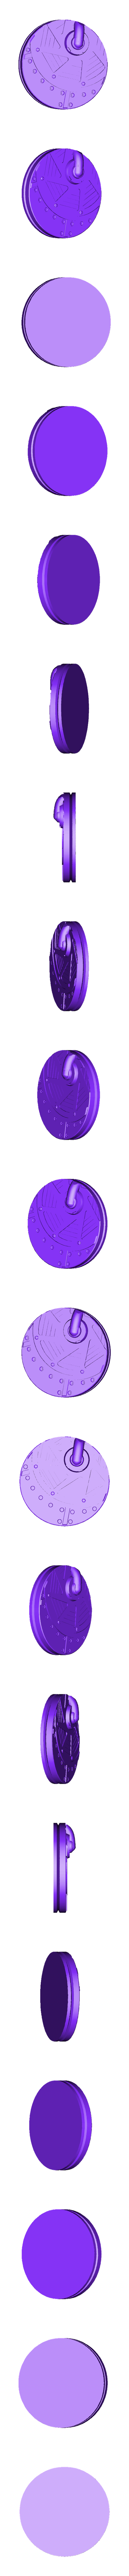 """Ship_F_-_1_inch.stl Download free STL file 1"""" & 2' Round Bases - The Ignis Quadrant • 3D printing template, ec3d"""